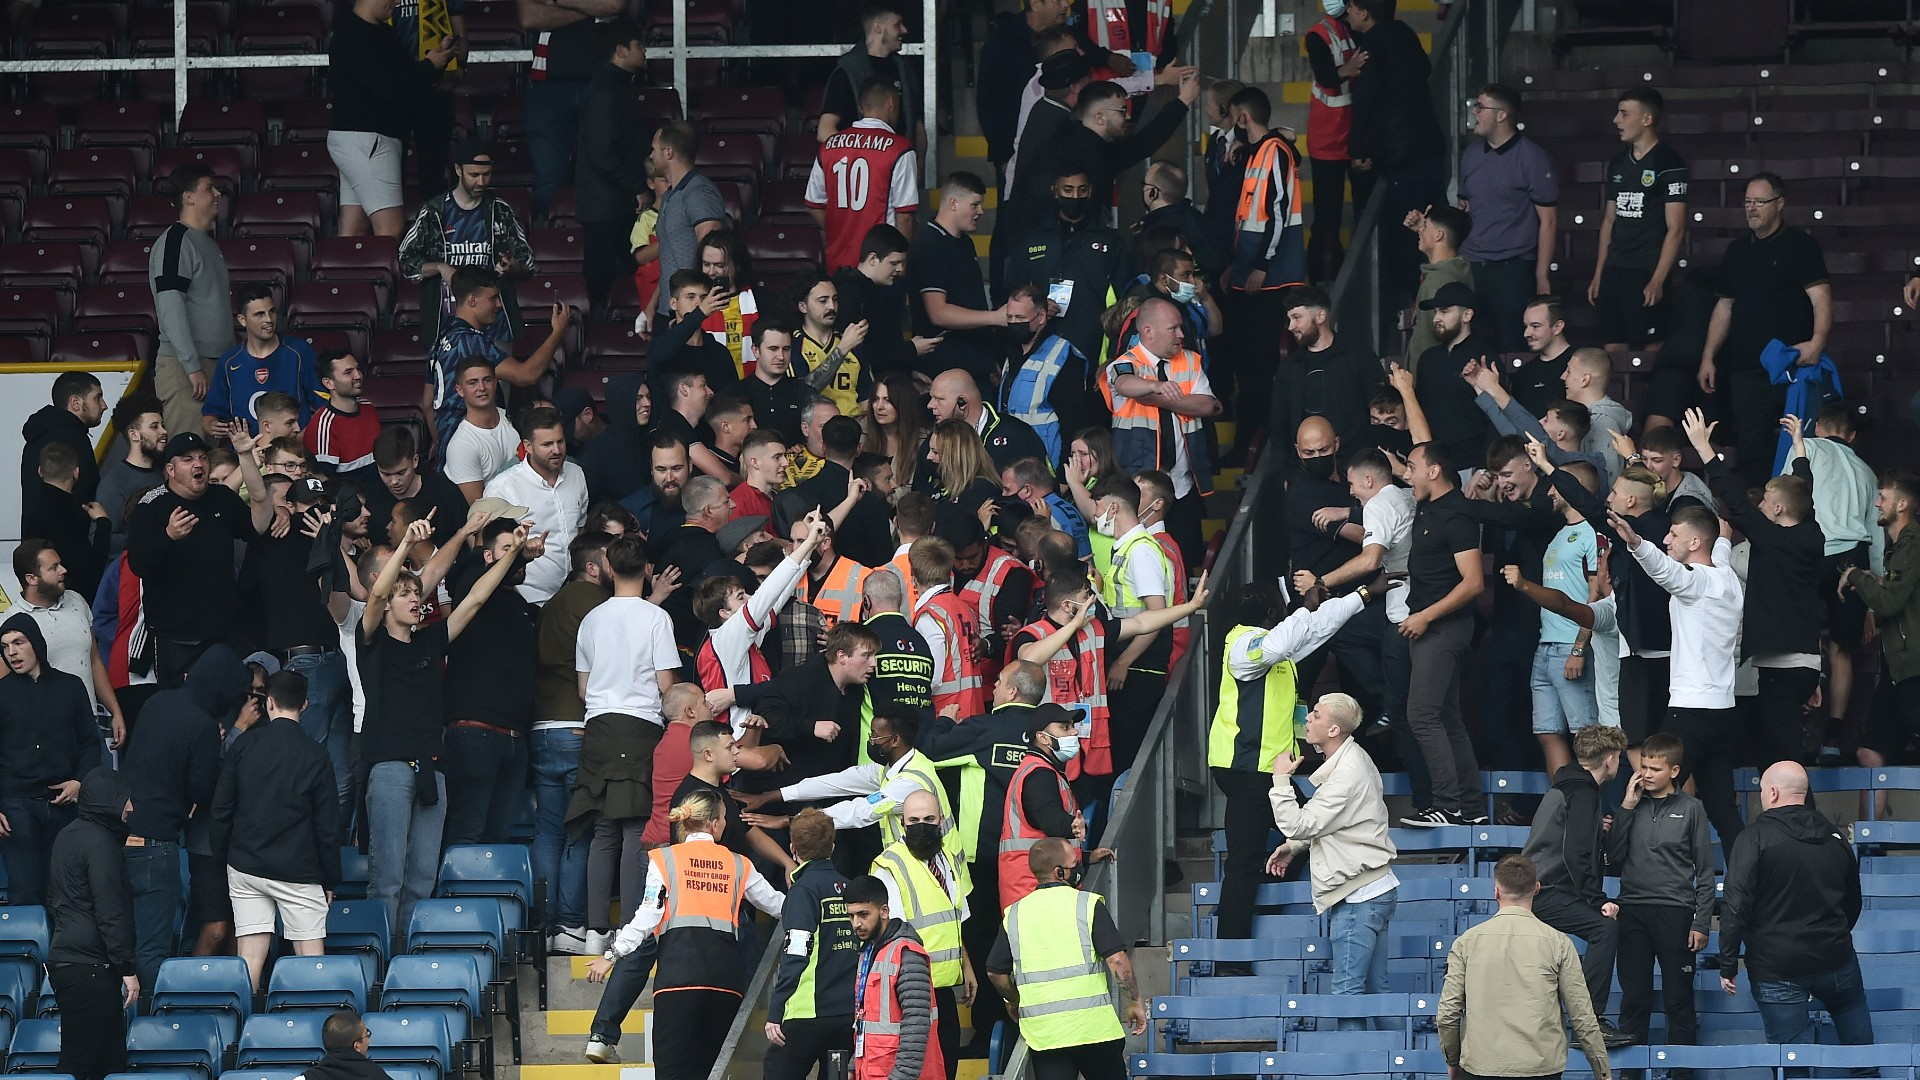 Burnley-Arsenal marred by crowd trouble following Gunners victory